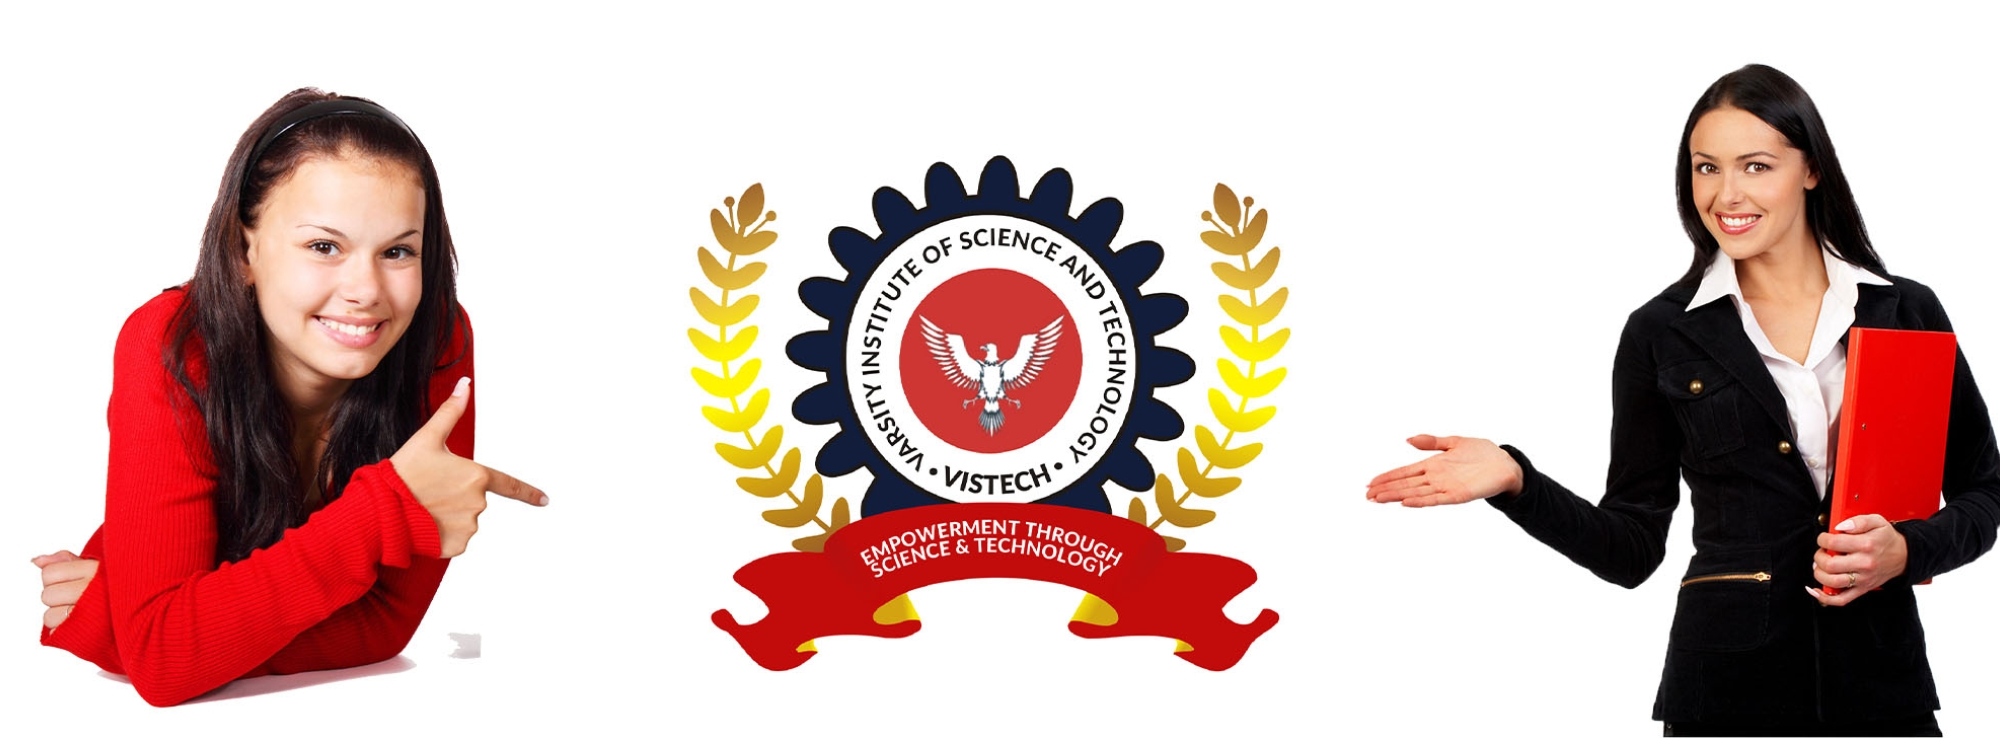 WELCOME TO VARSITY INSTITUTE OF SCIENCE & TECHNOLOGY